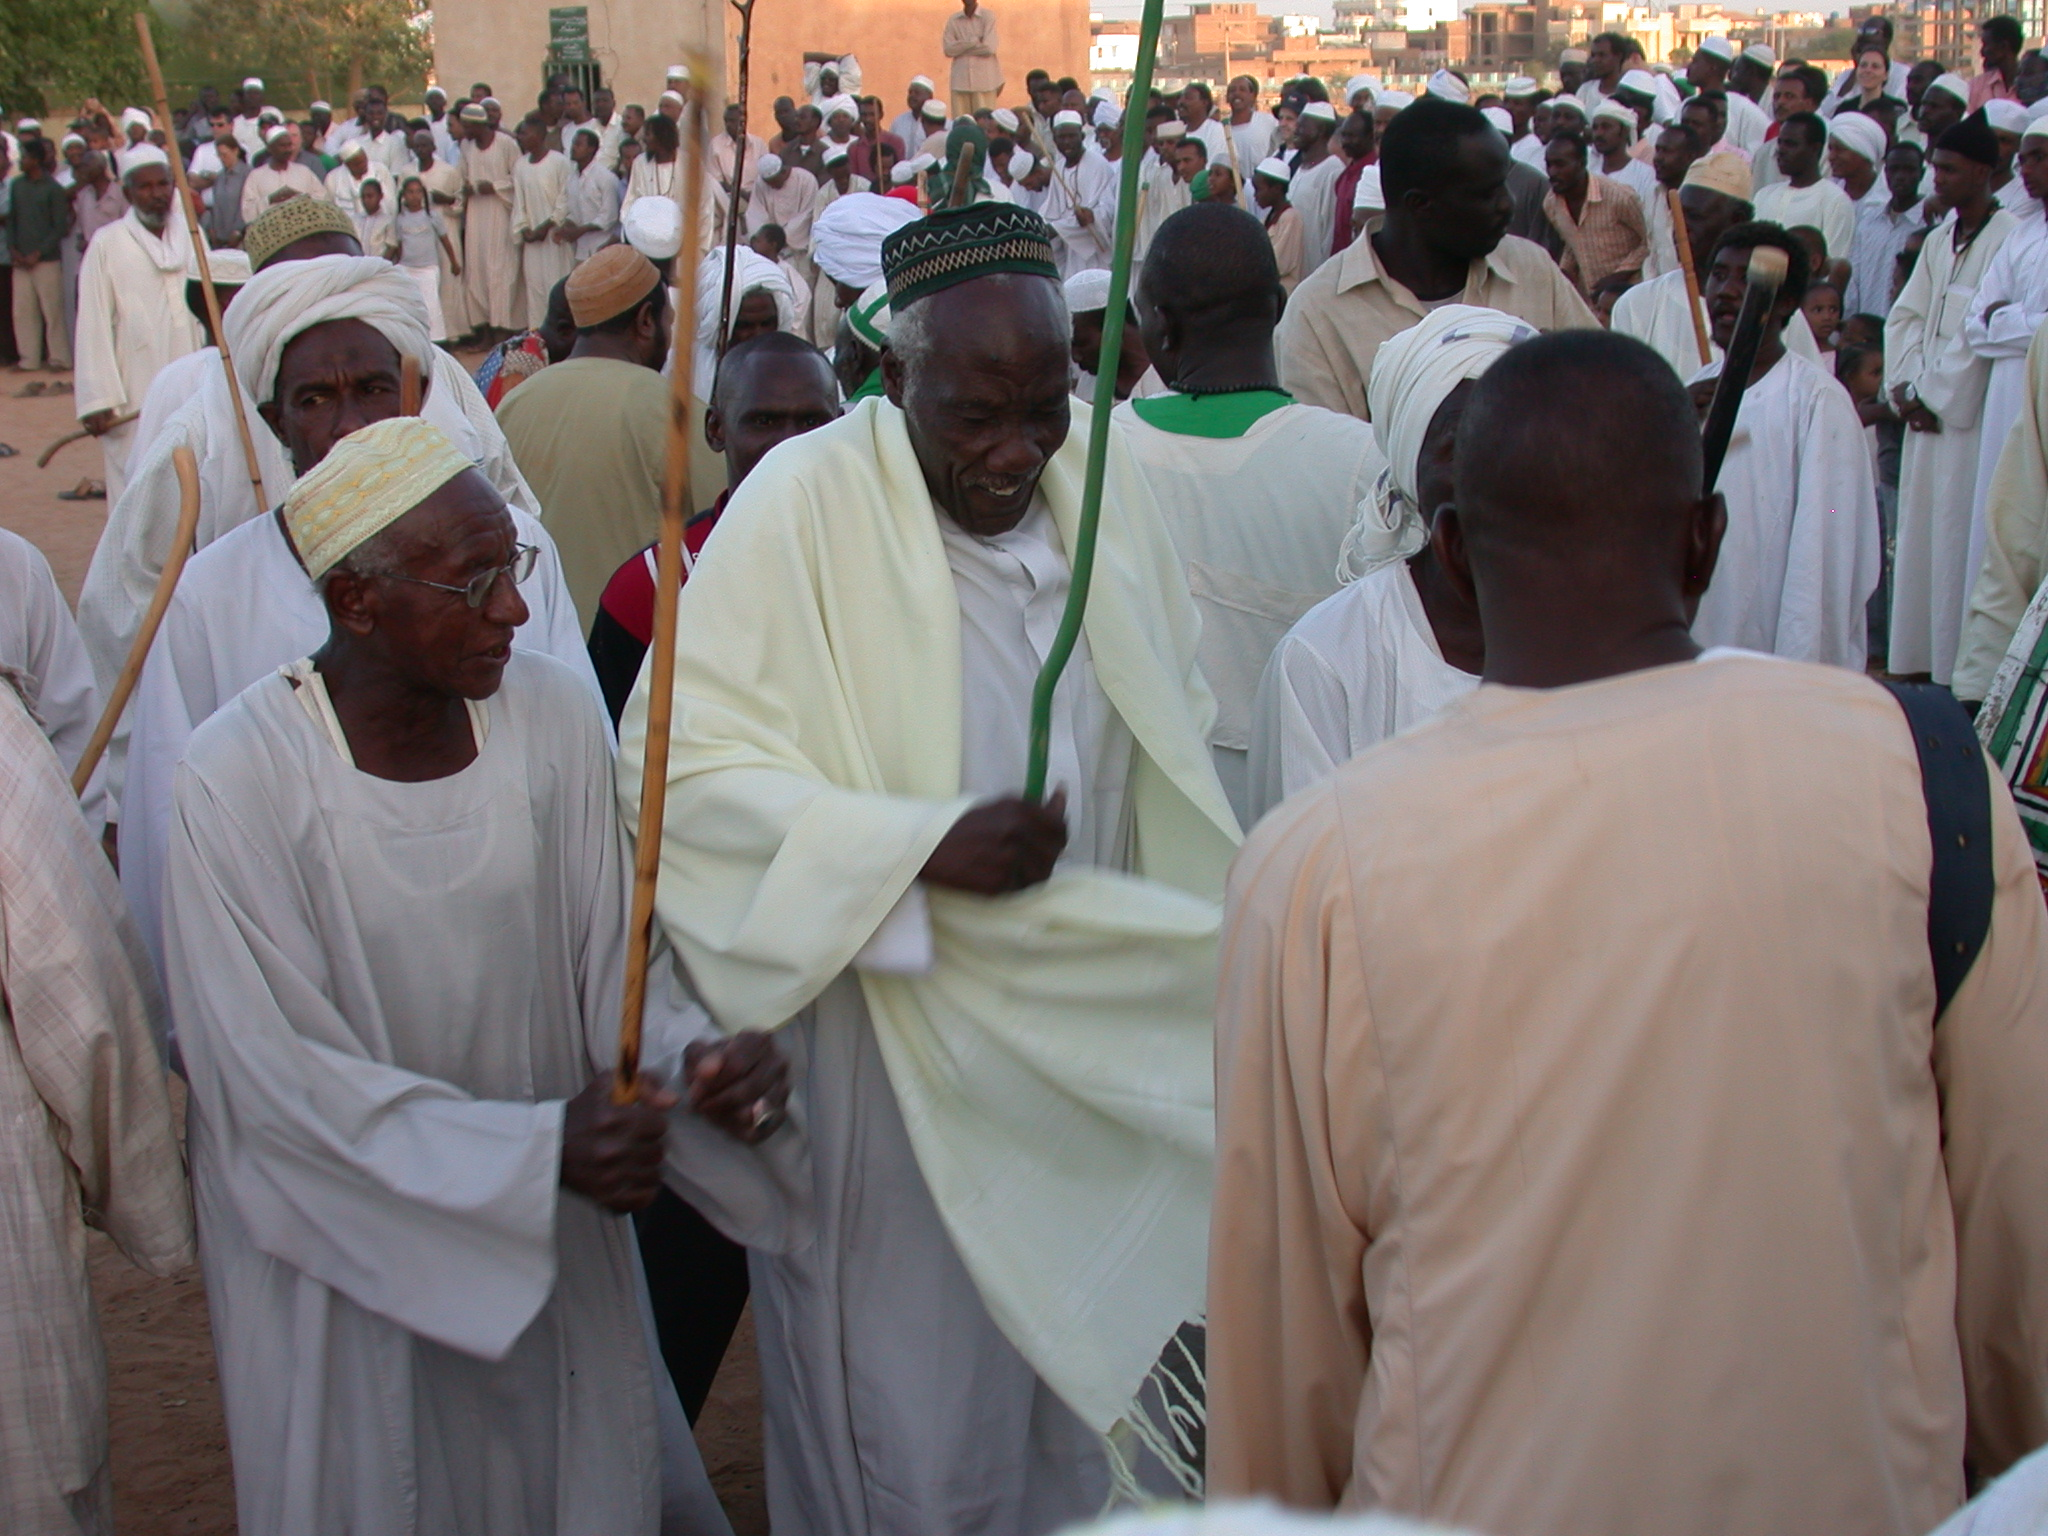 Man Entering Blissful Trance While Sufi Dancing, Omdurman, Sudan